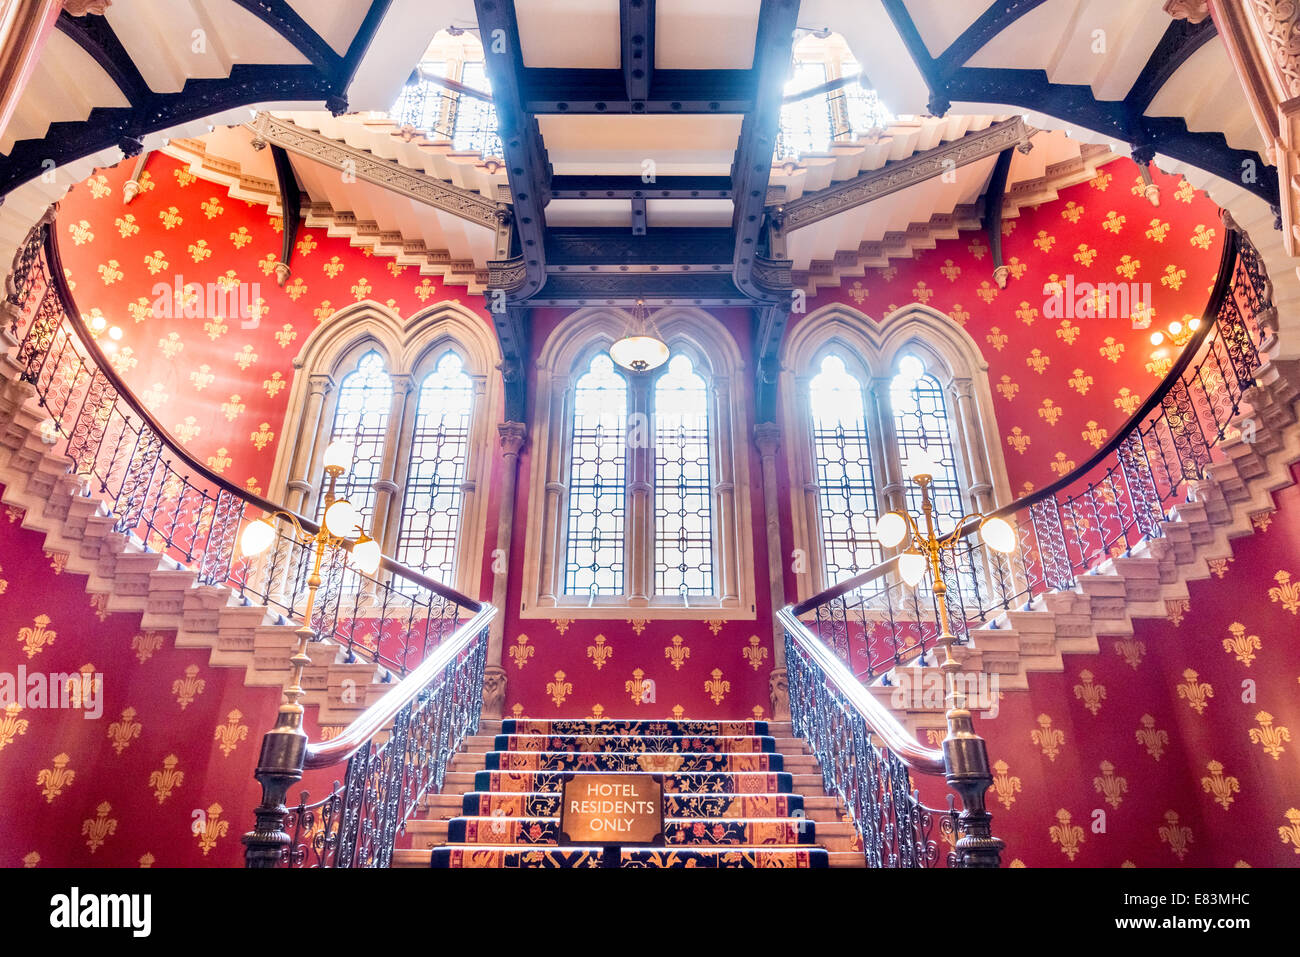 Central staircase of the St. Pancras Renaissance London Hotel, London, England, UK - Stock Image